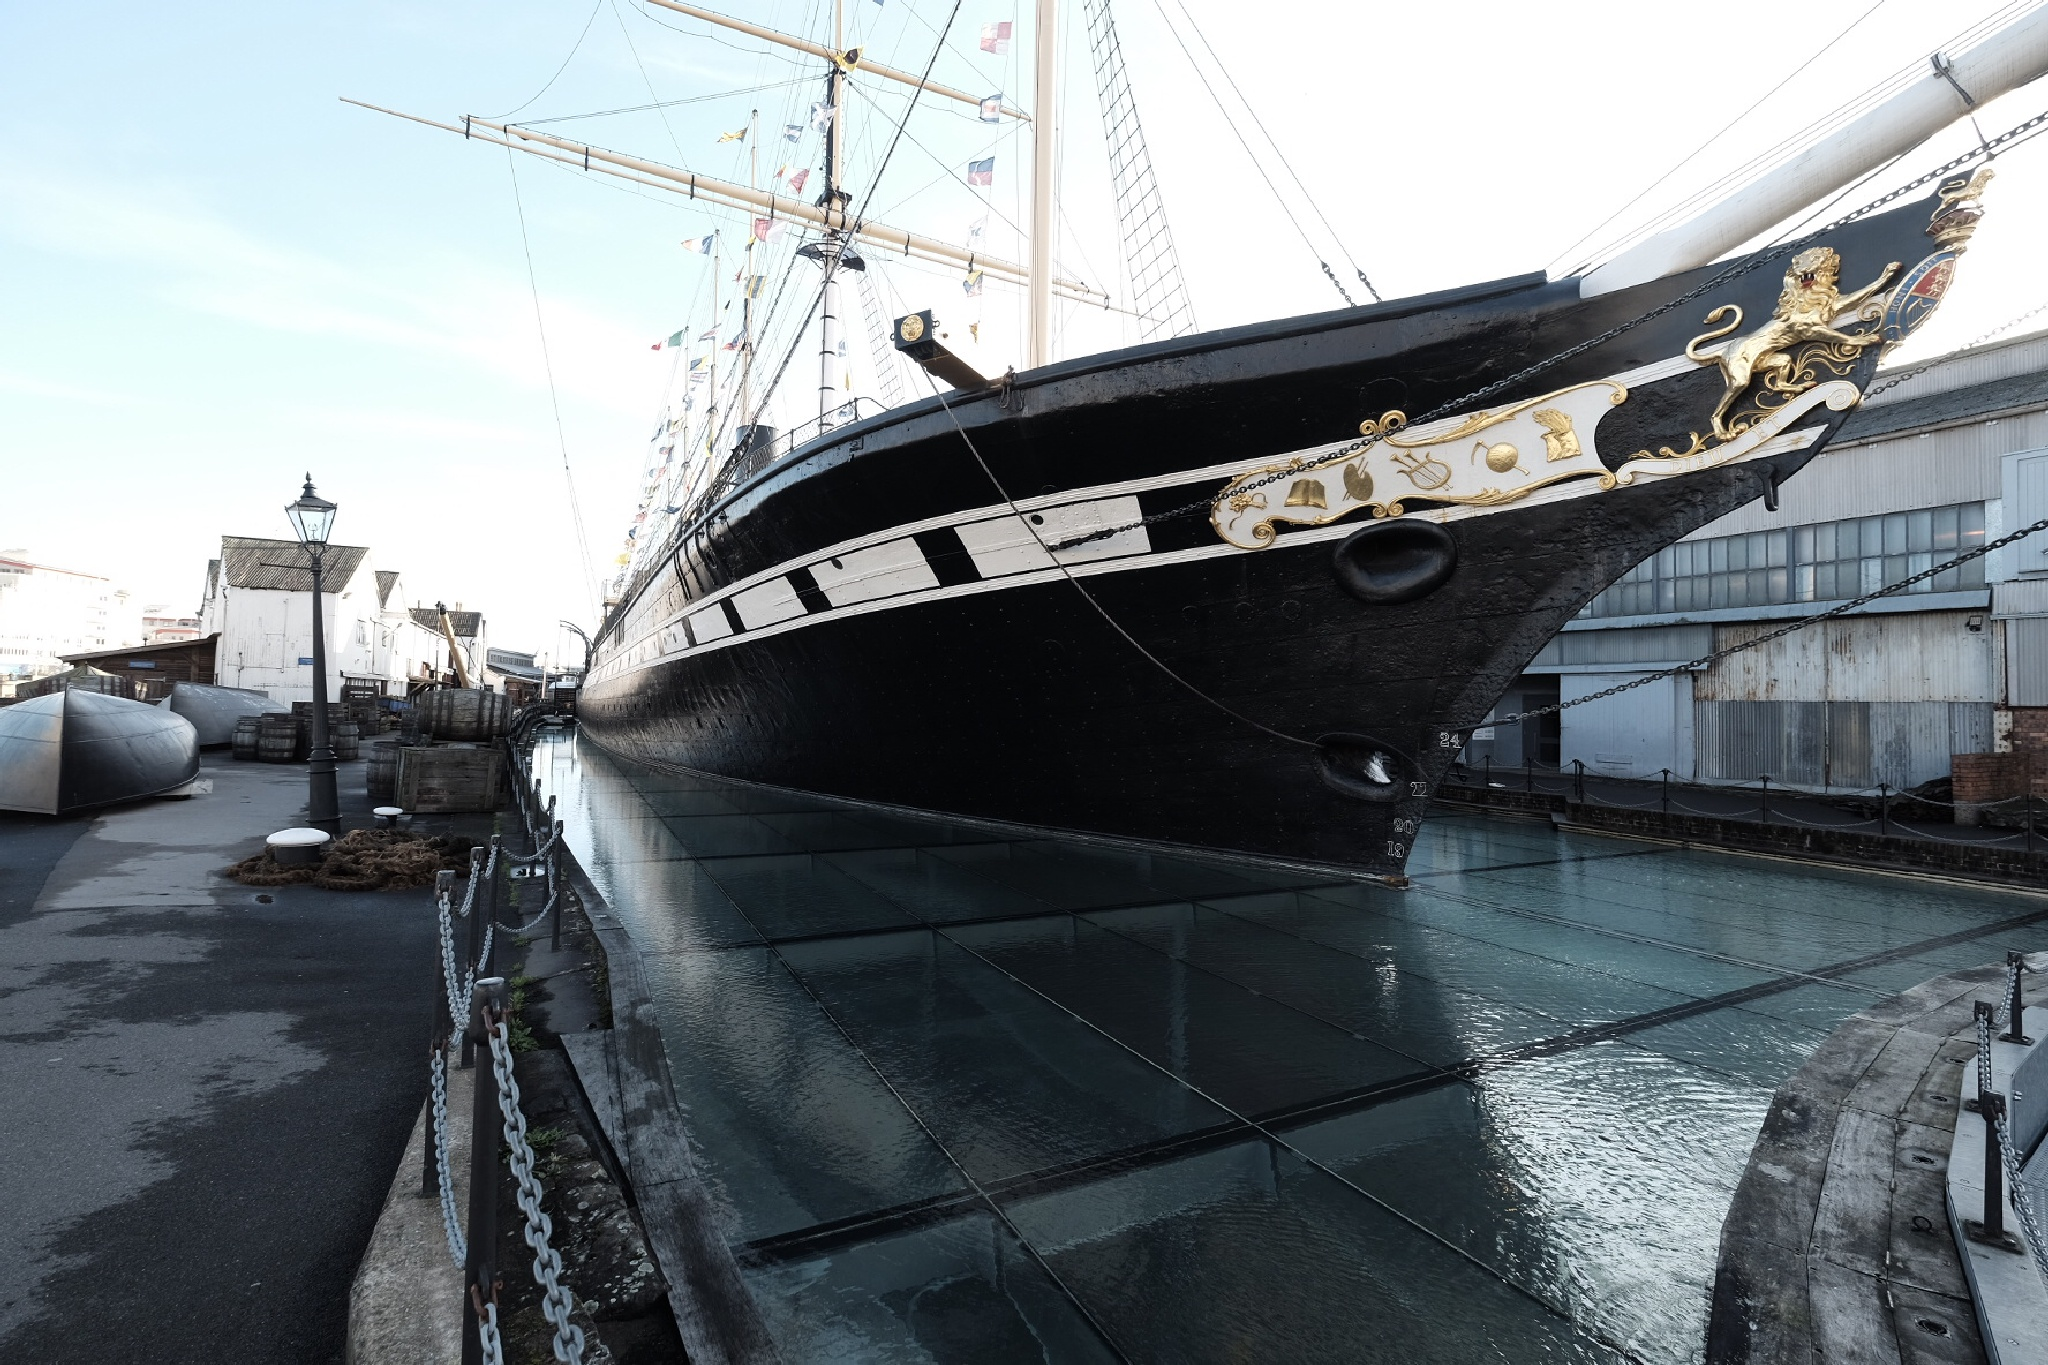 SS Great Britain by Martin Beecroft